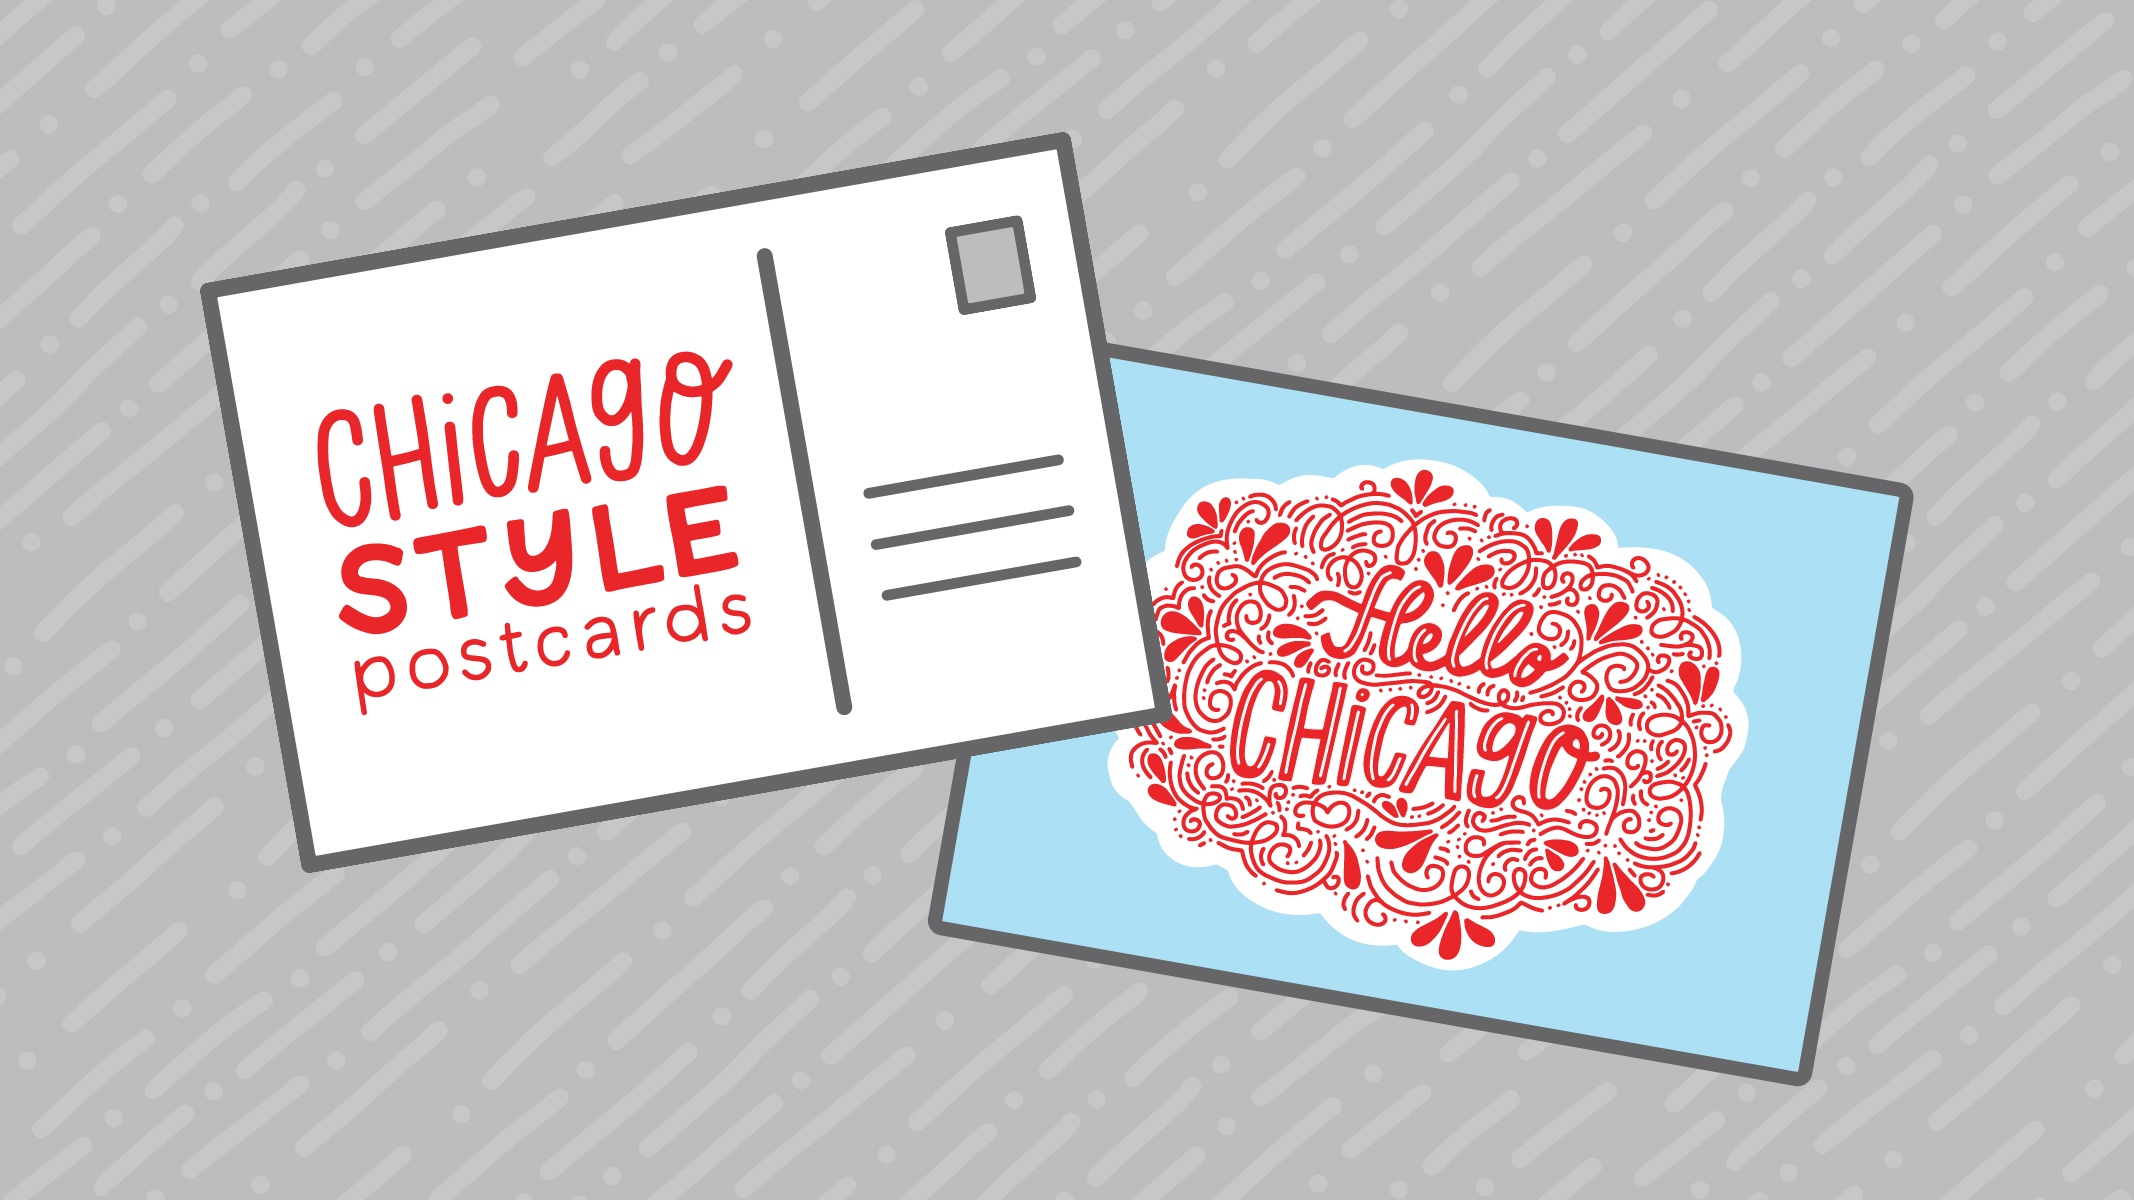 Chicago Style Postcards with Hello Peoria Design